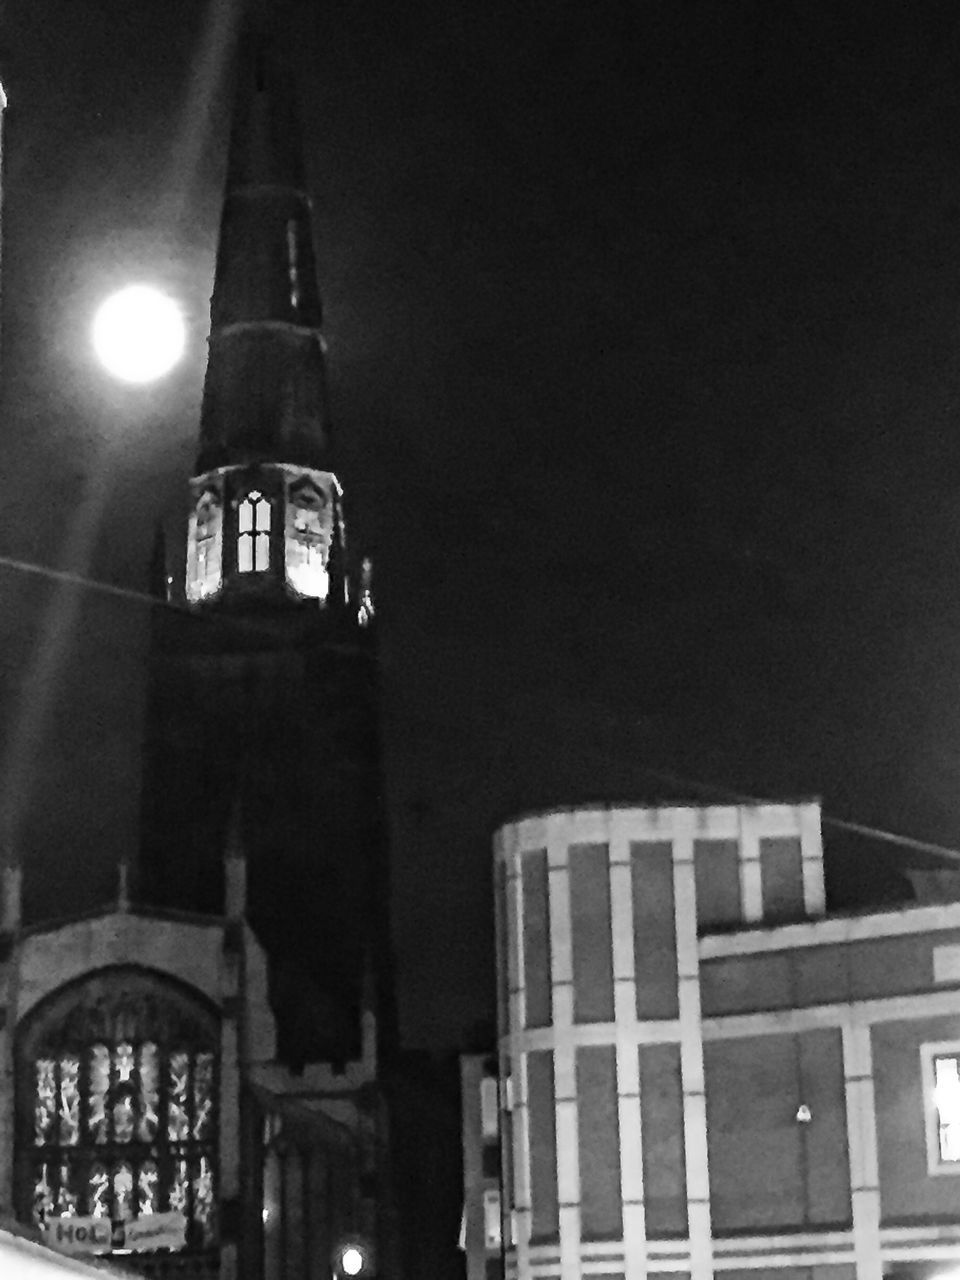 architecture, night, built structure, building exterior, illuminated, religion, low angle view, no people, place of worship, outdoors, sky